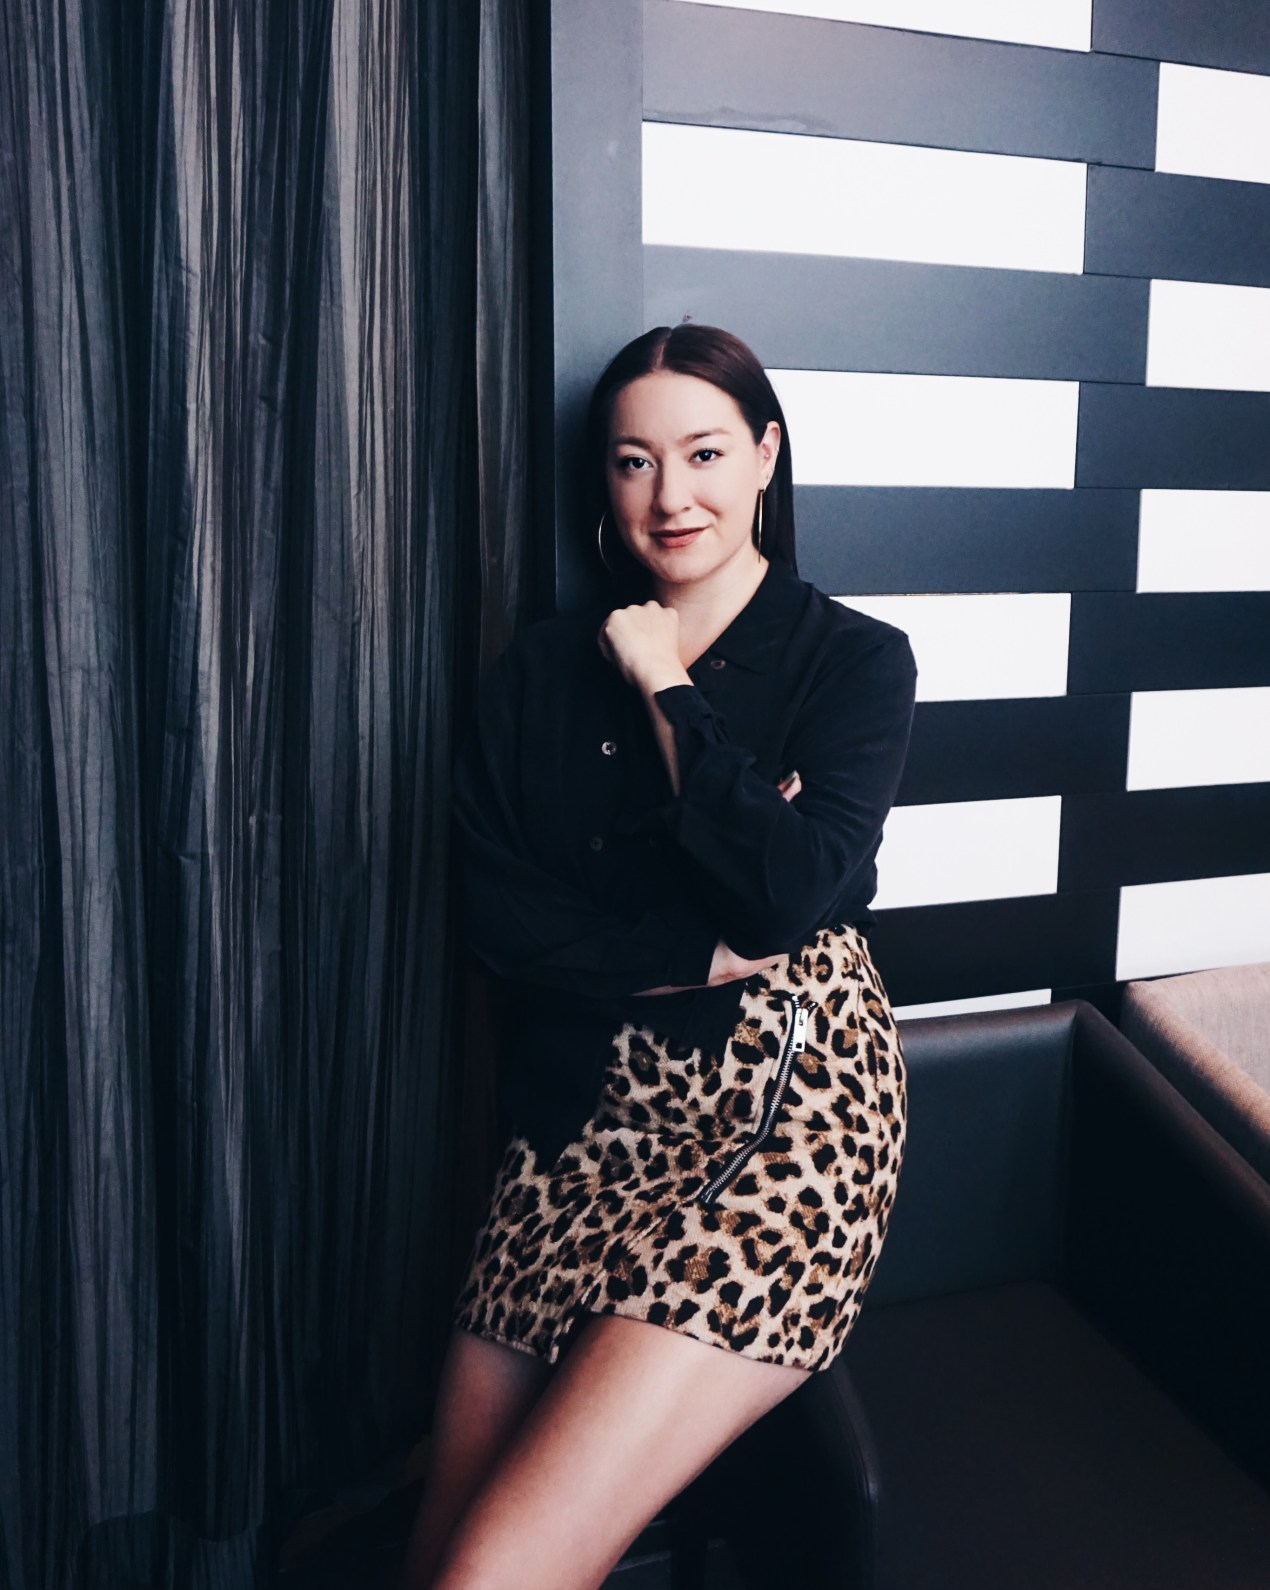 About The Lady-like Leopard Blog by Melina Morry